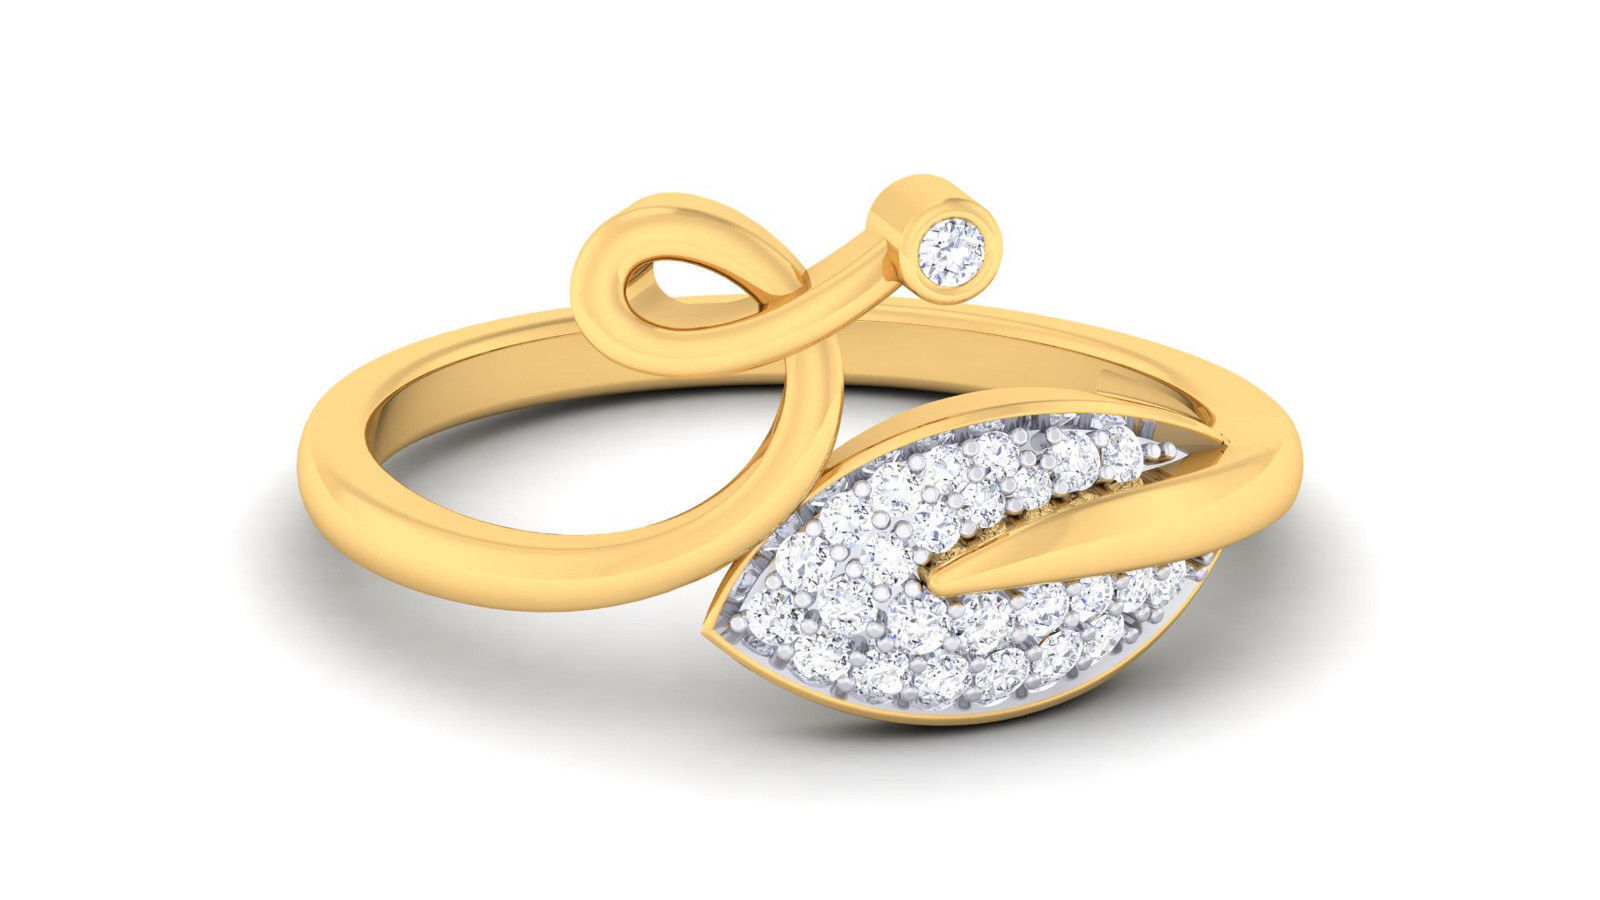 Pave 0.22 Cts Round Brilliant Cut Diamonds Engagement Ring In Solid 18Karat gold